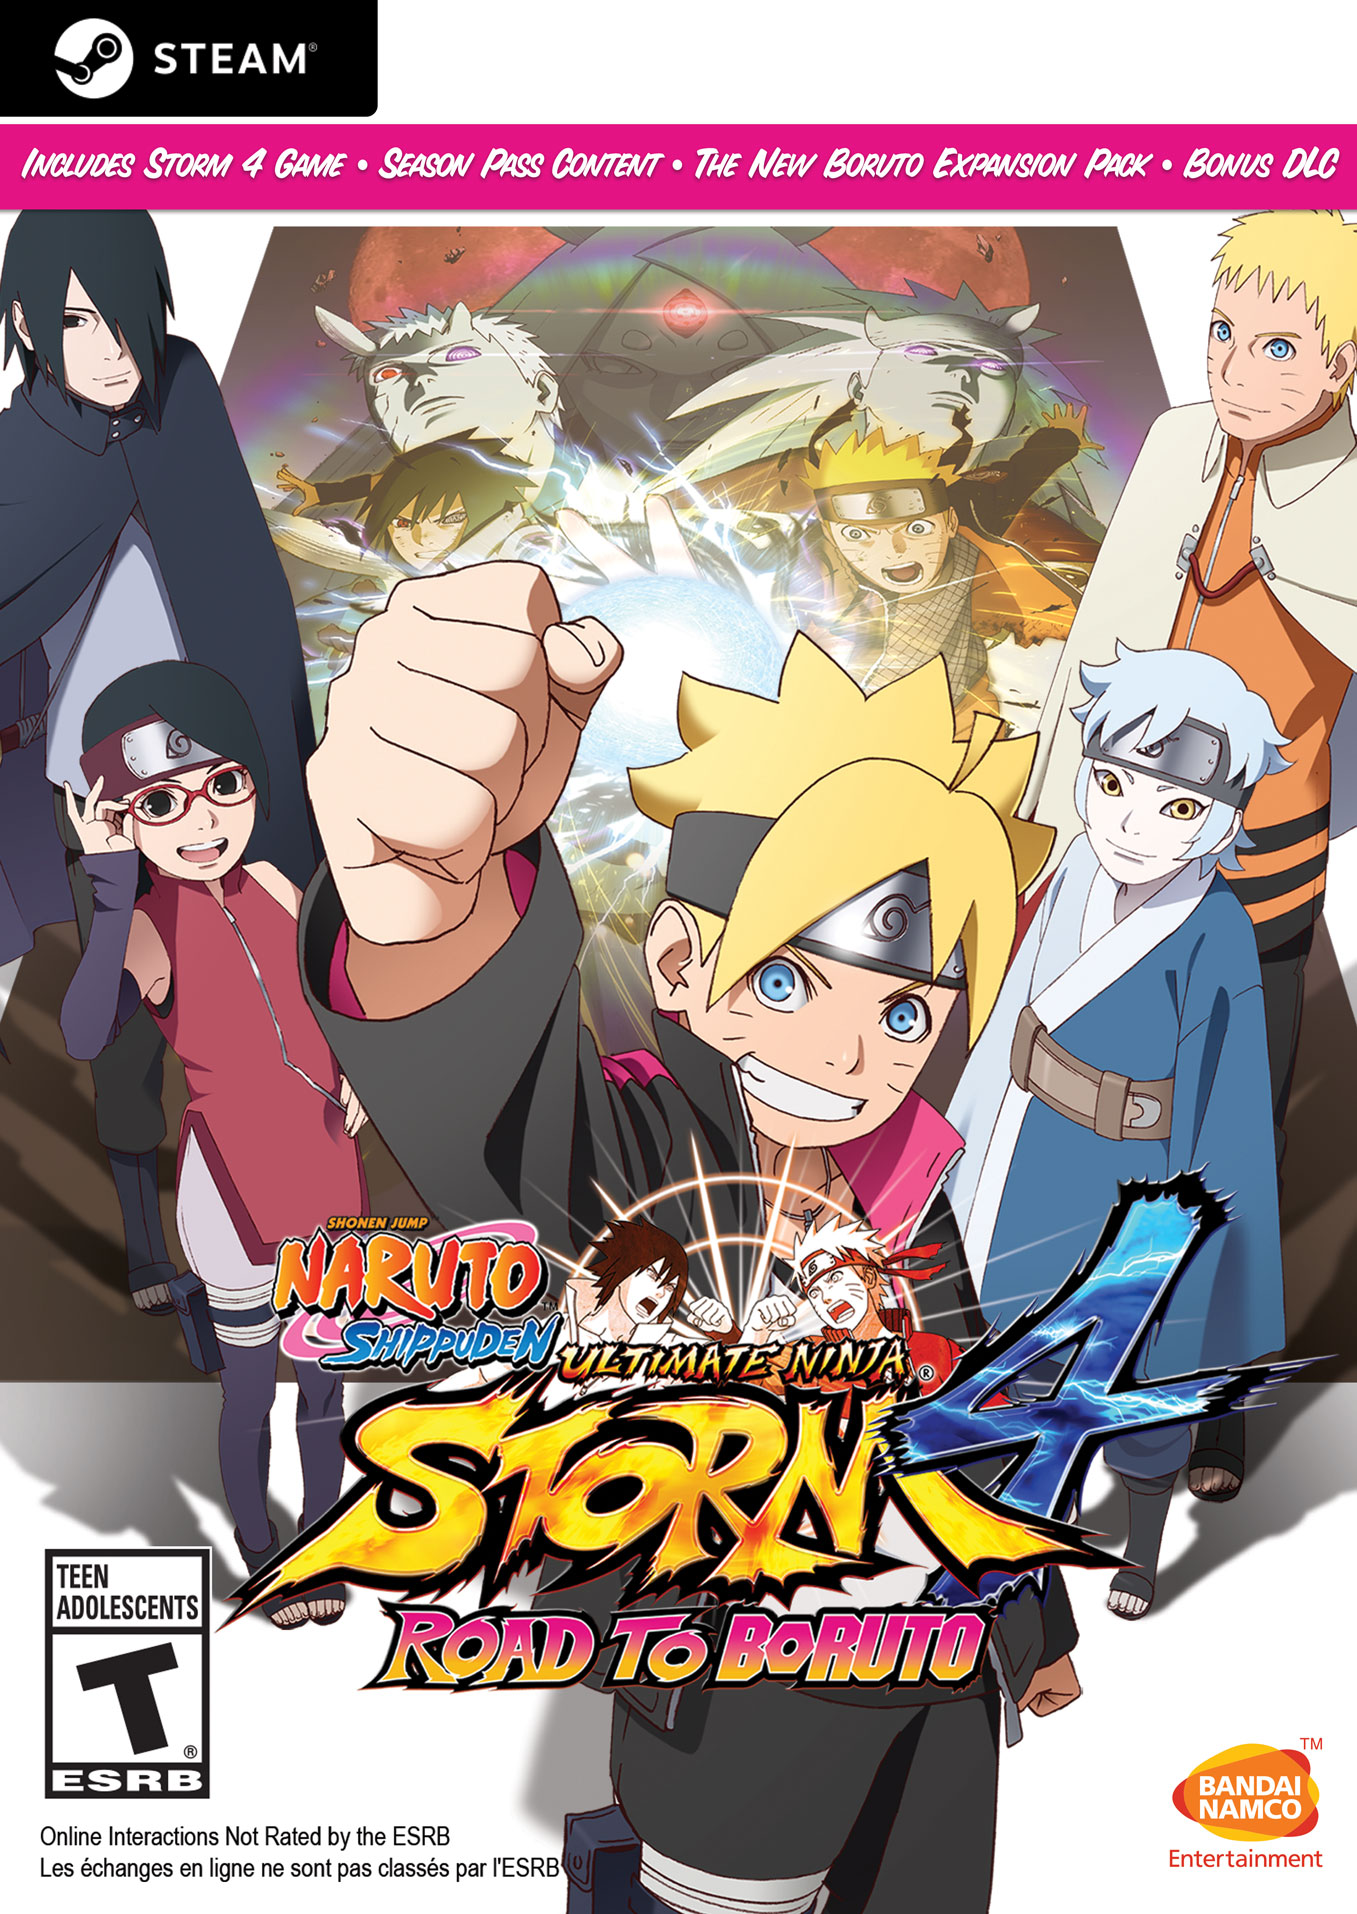 NARUTO SHIPPUDEN: Ultimate Ninja STORM 4 Road to BORUTO (Steam Key) |  Bandai Namco Store